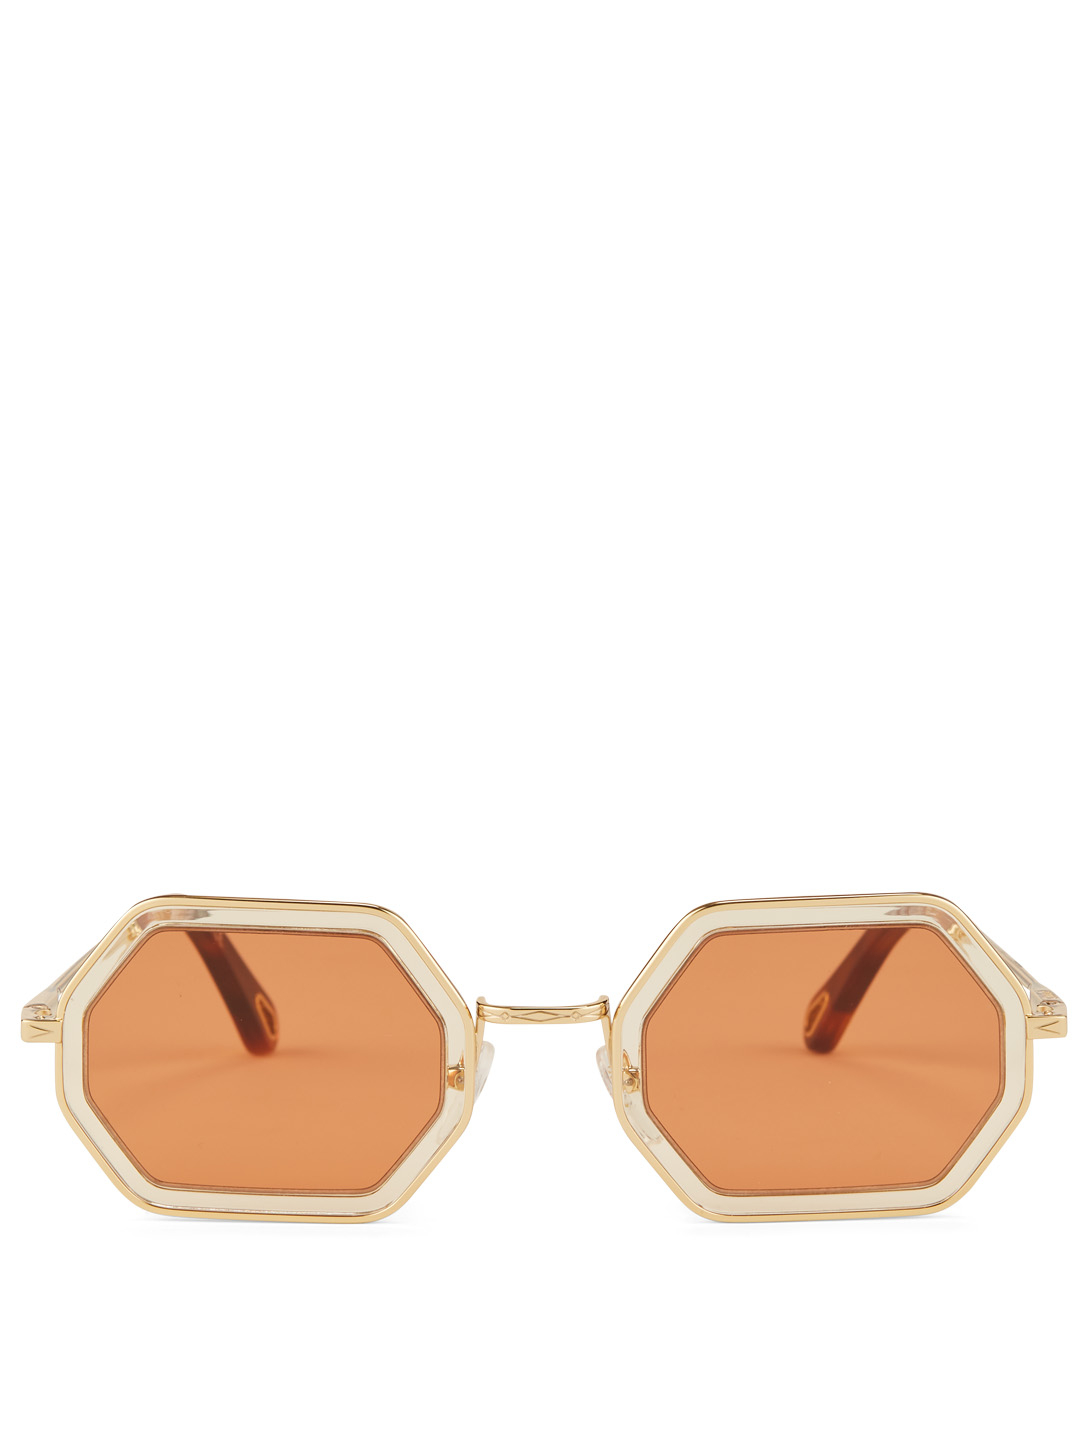 60f8ce788 CHLOÉ Tally Small Geometric Sunglasses Women's Brown ...